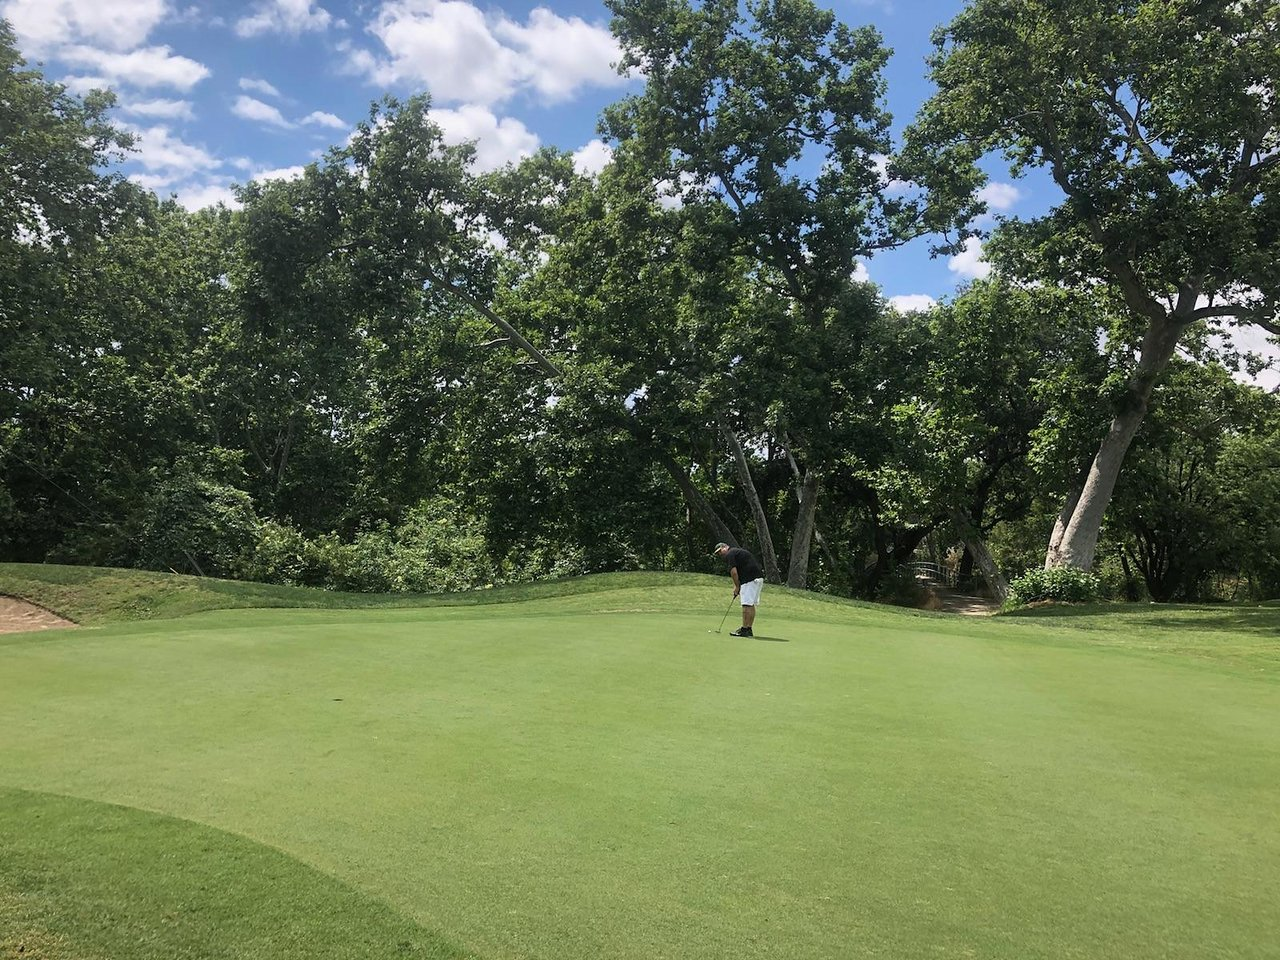 Bidwell Park Golf Course Chico 2020 All You Need To Know Before You Go With Photos Tripadvisor